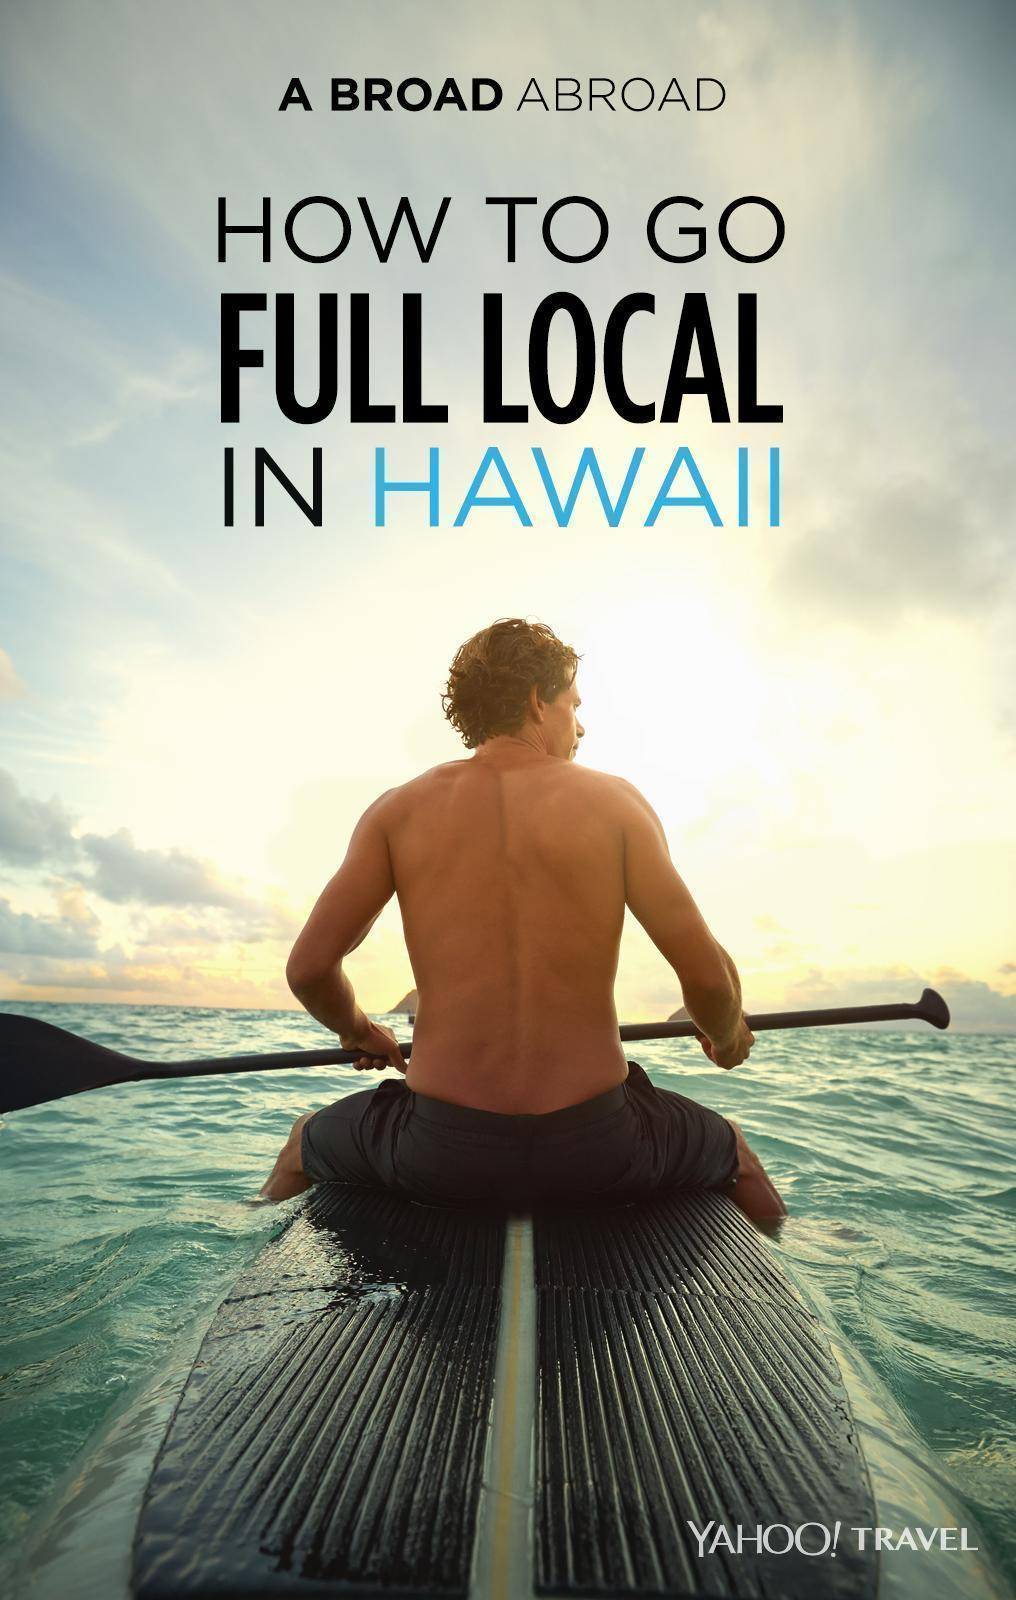 WATCH: How to Go Full Local in Hawaii